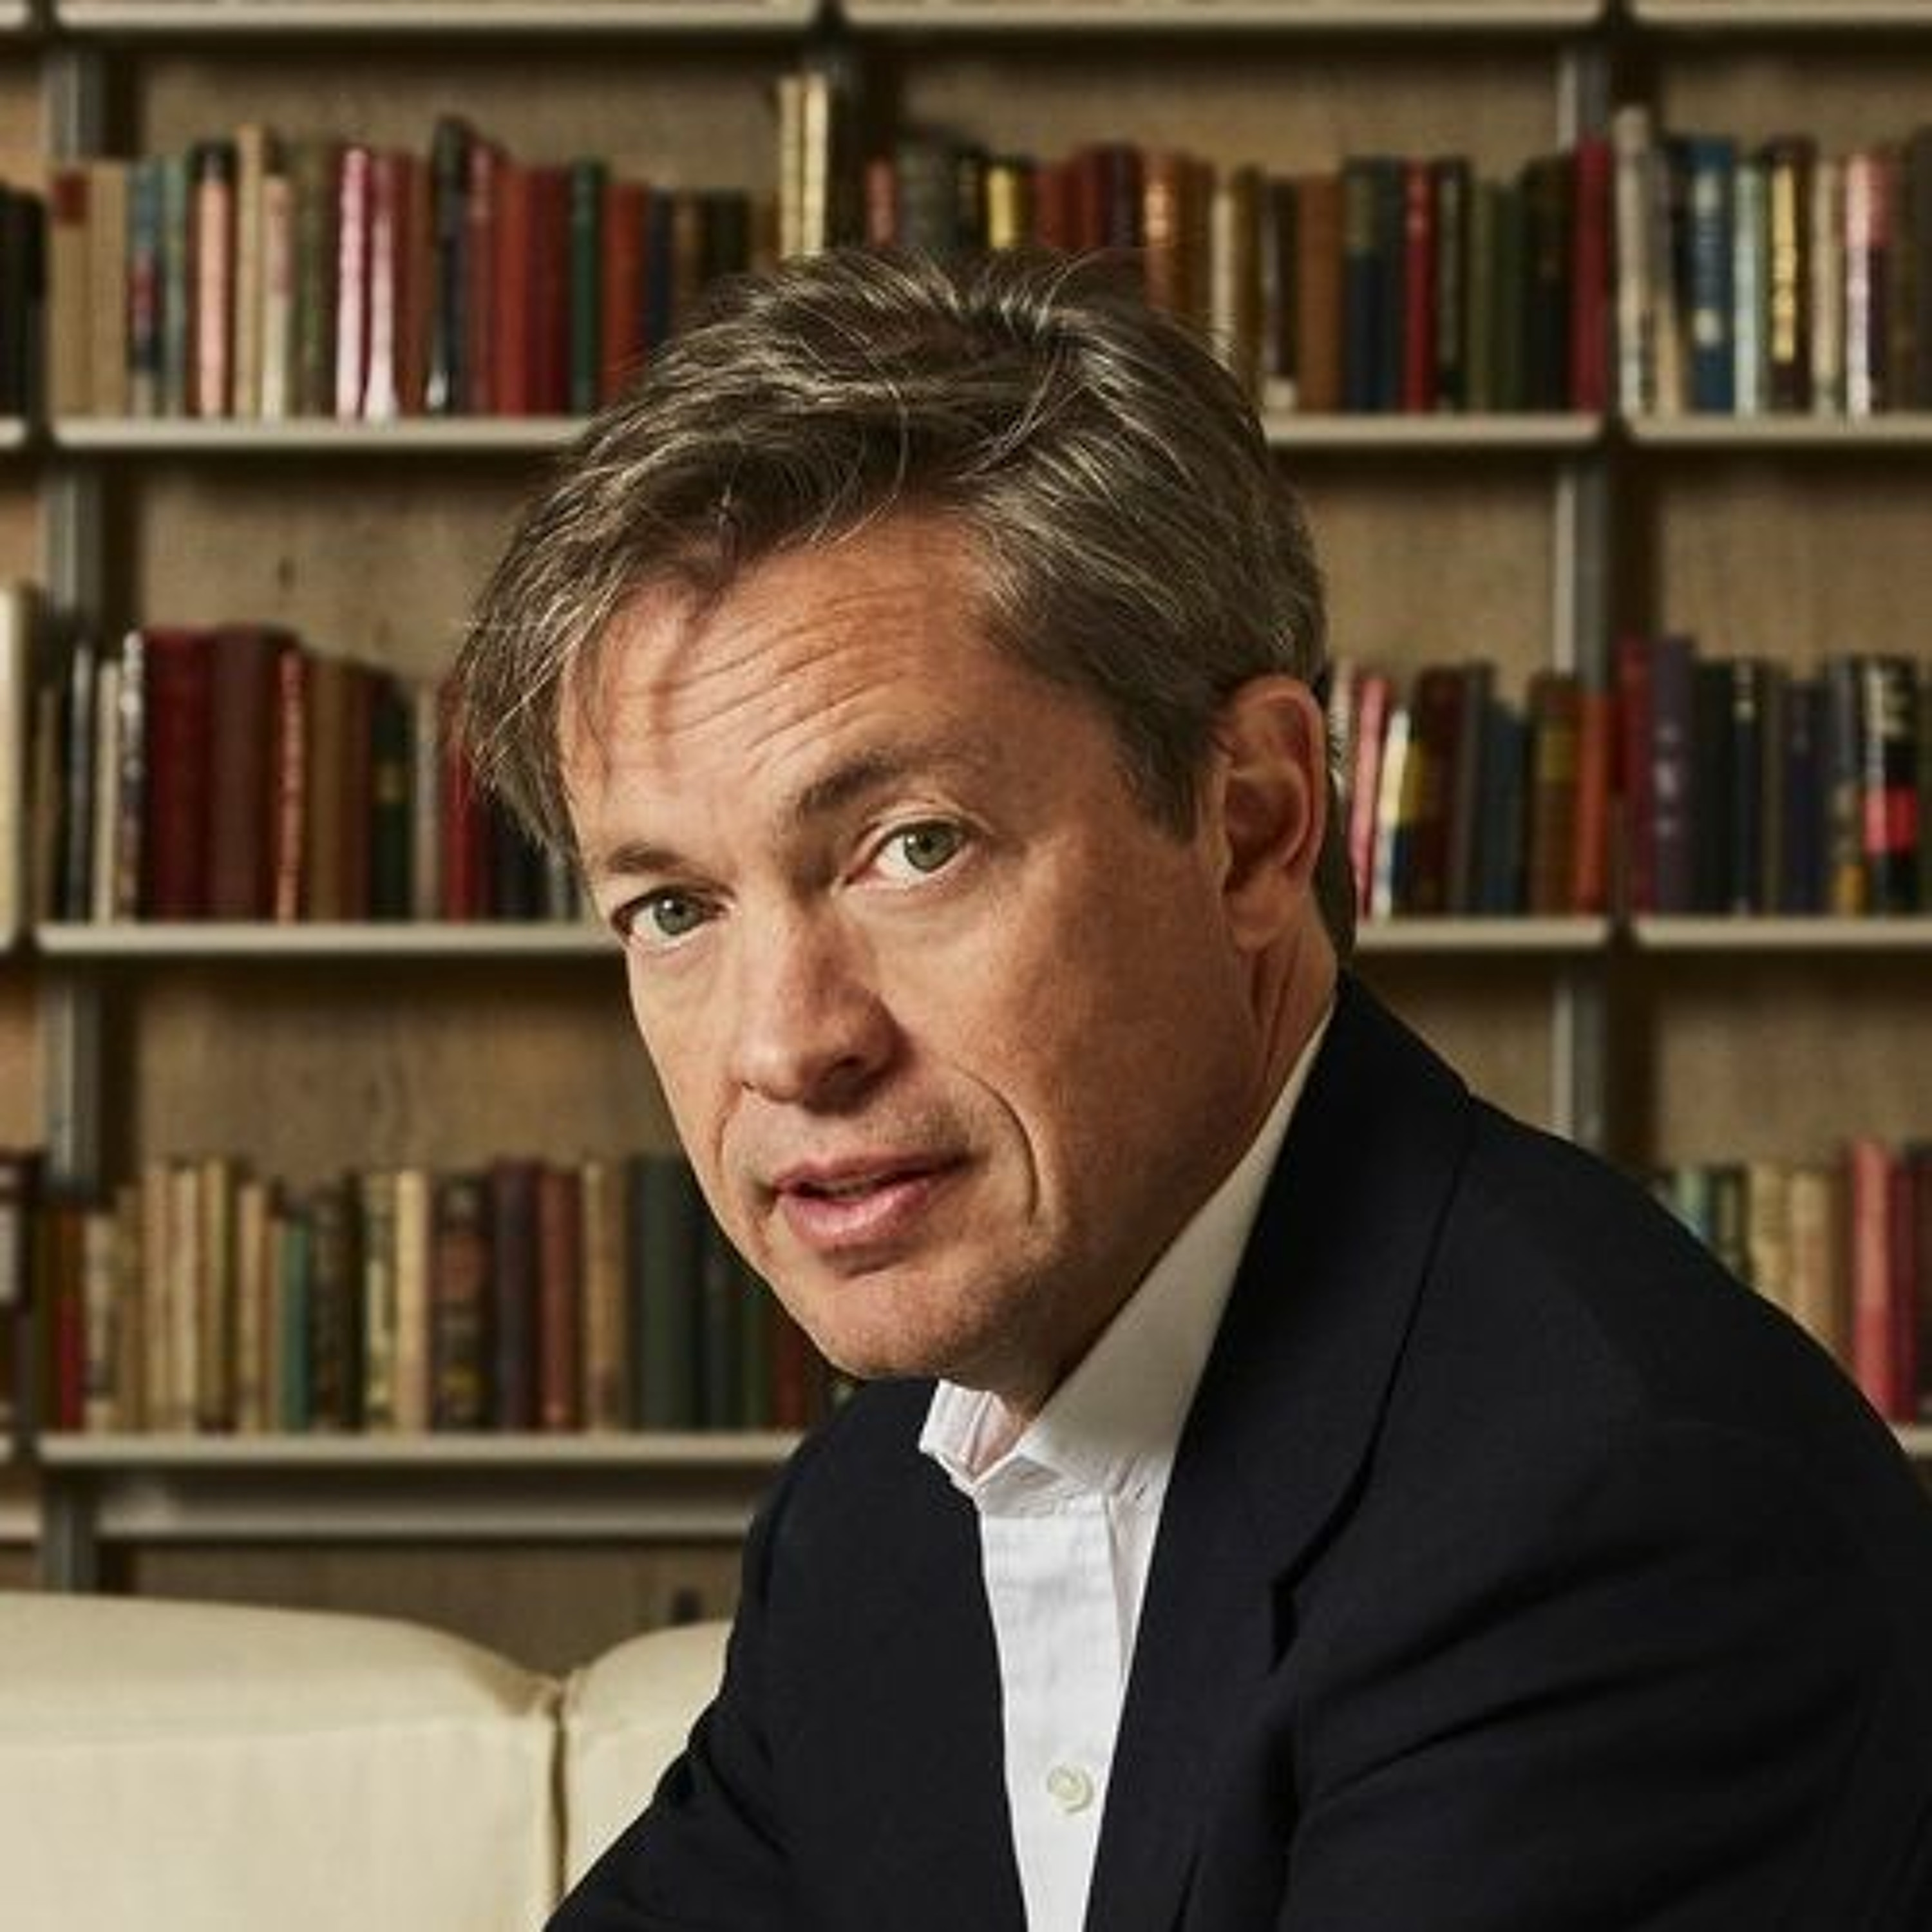 Nicolas Berggruen on the Dynamics of Power, Wisdom, and Ideas in the Age of AI